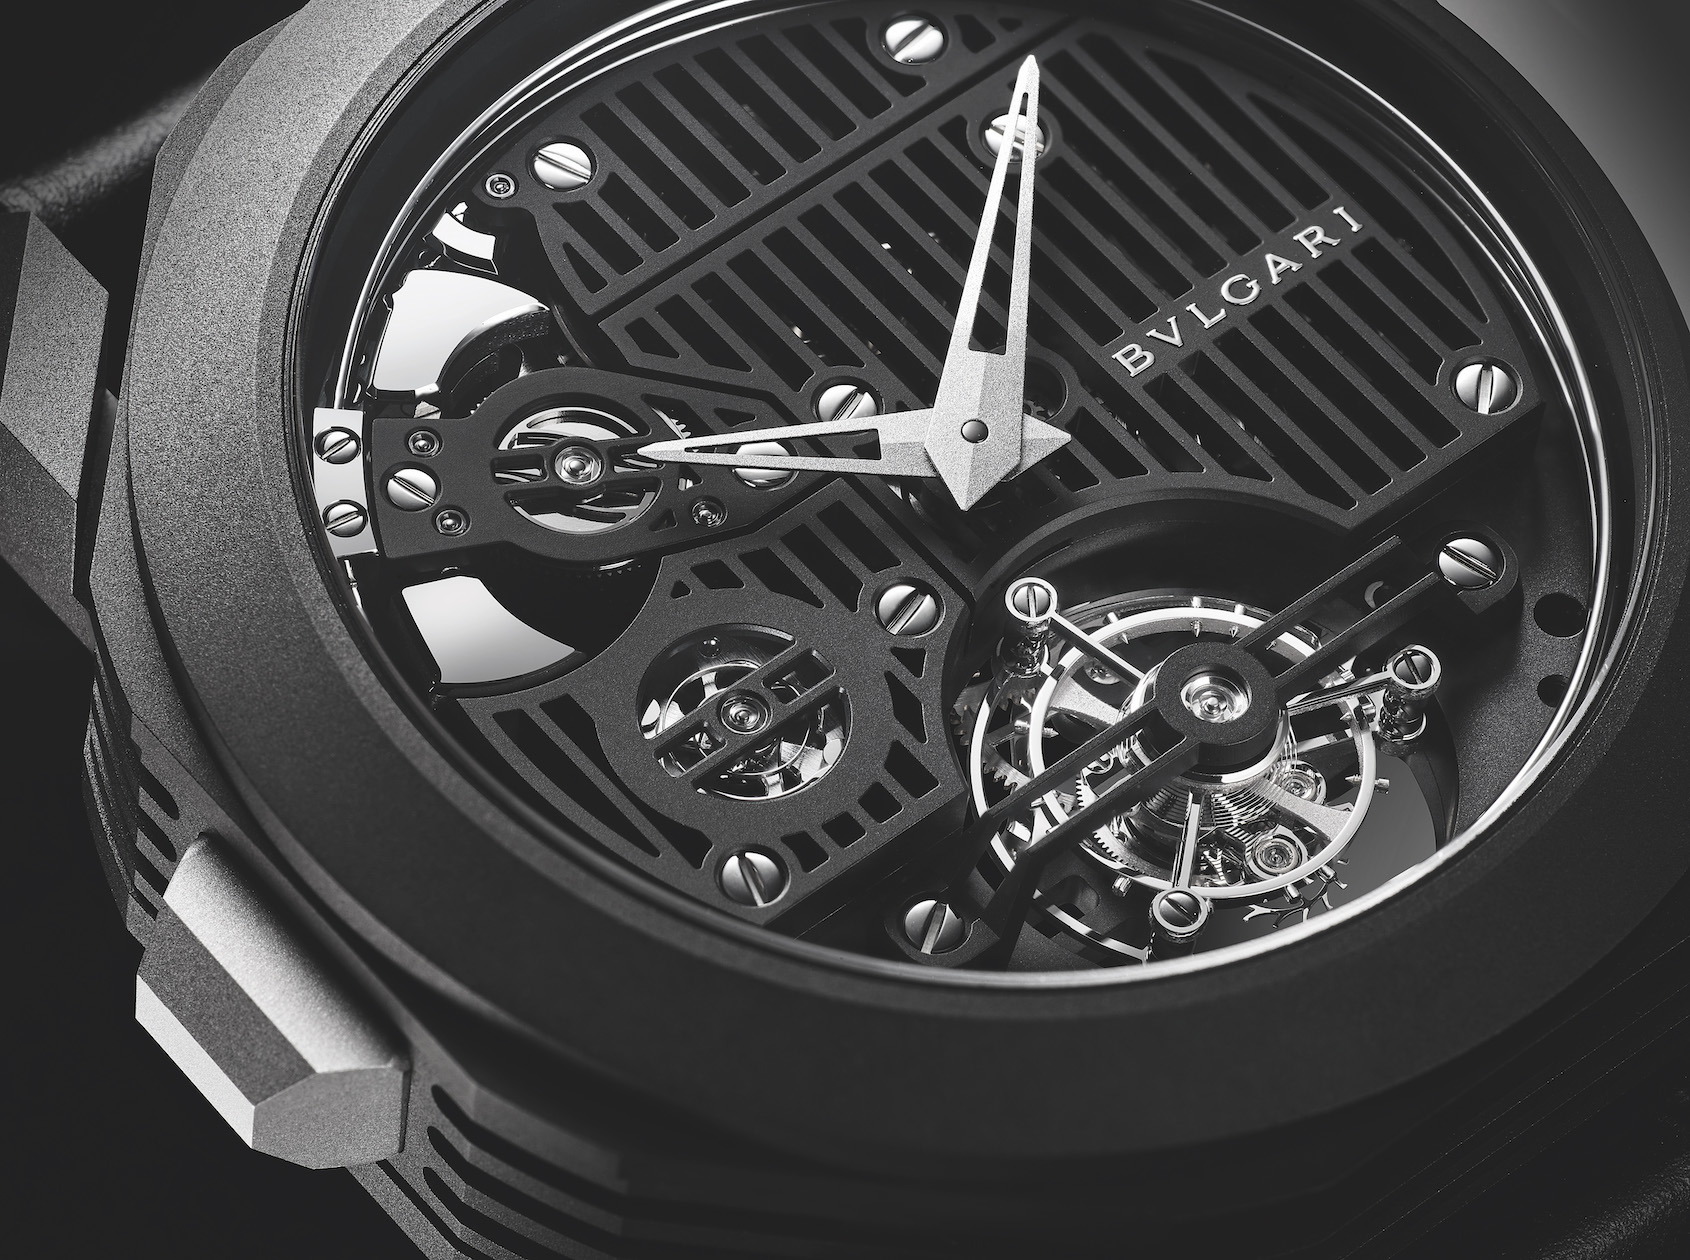 INTRODUCING: If Darth Vader wore a watch it'd be this Bulgari Octo Roma Carillon Tourbillon